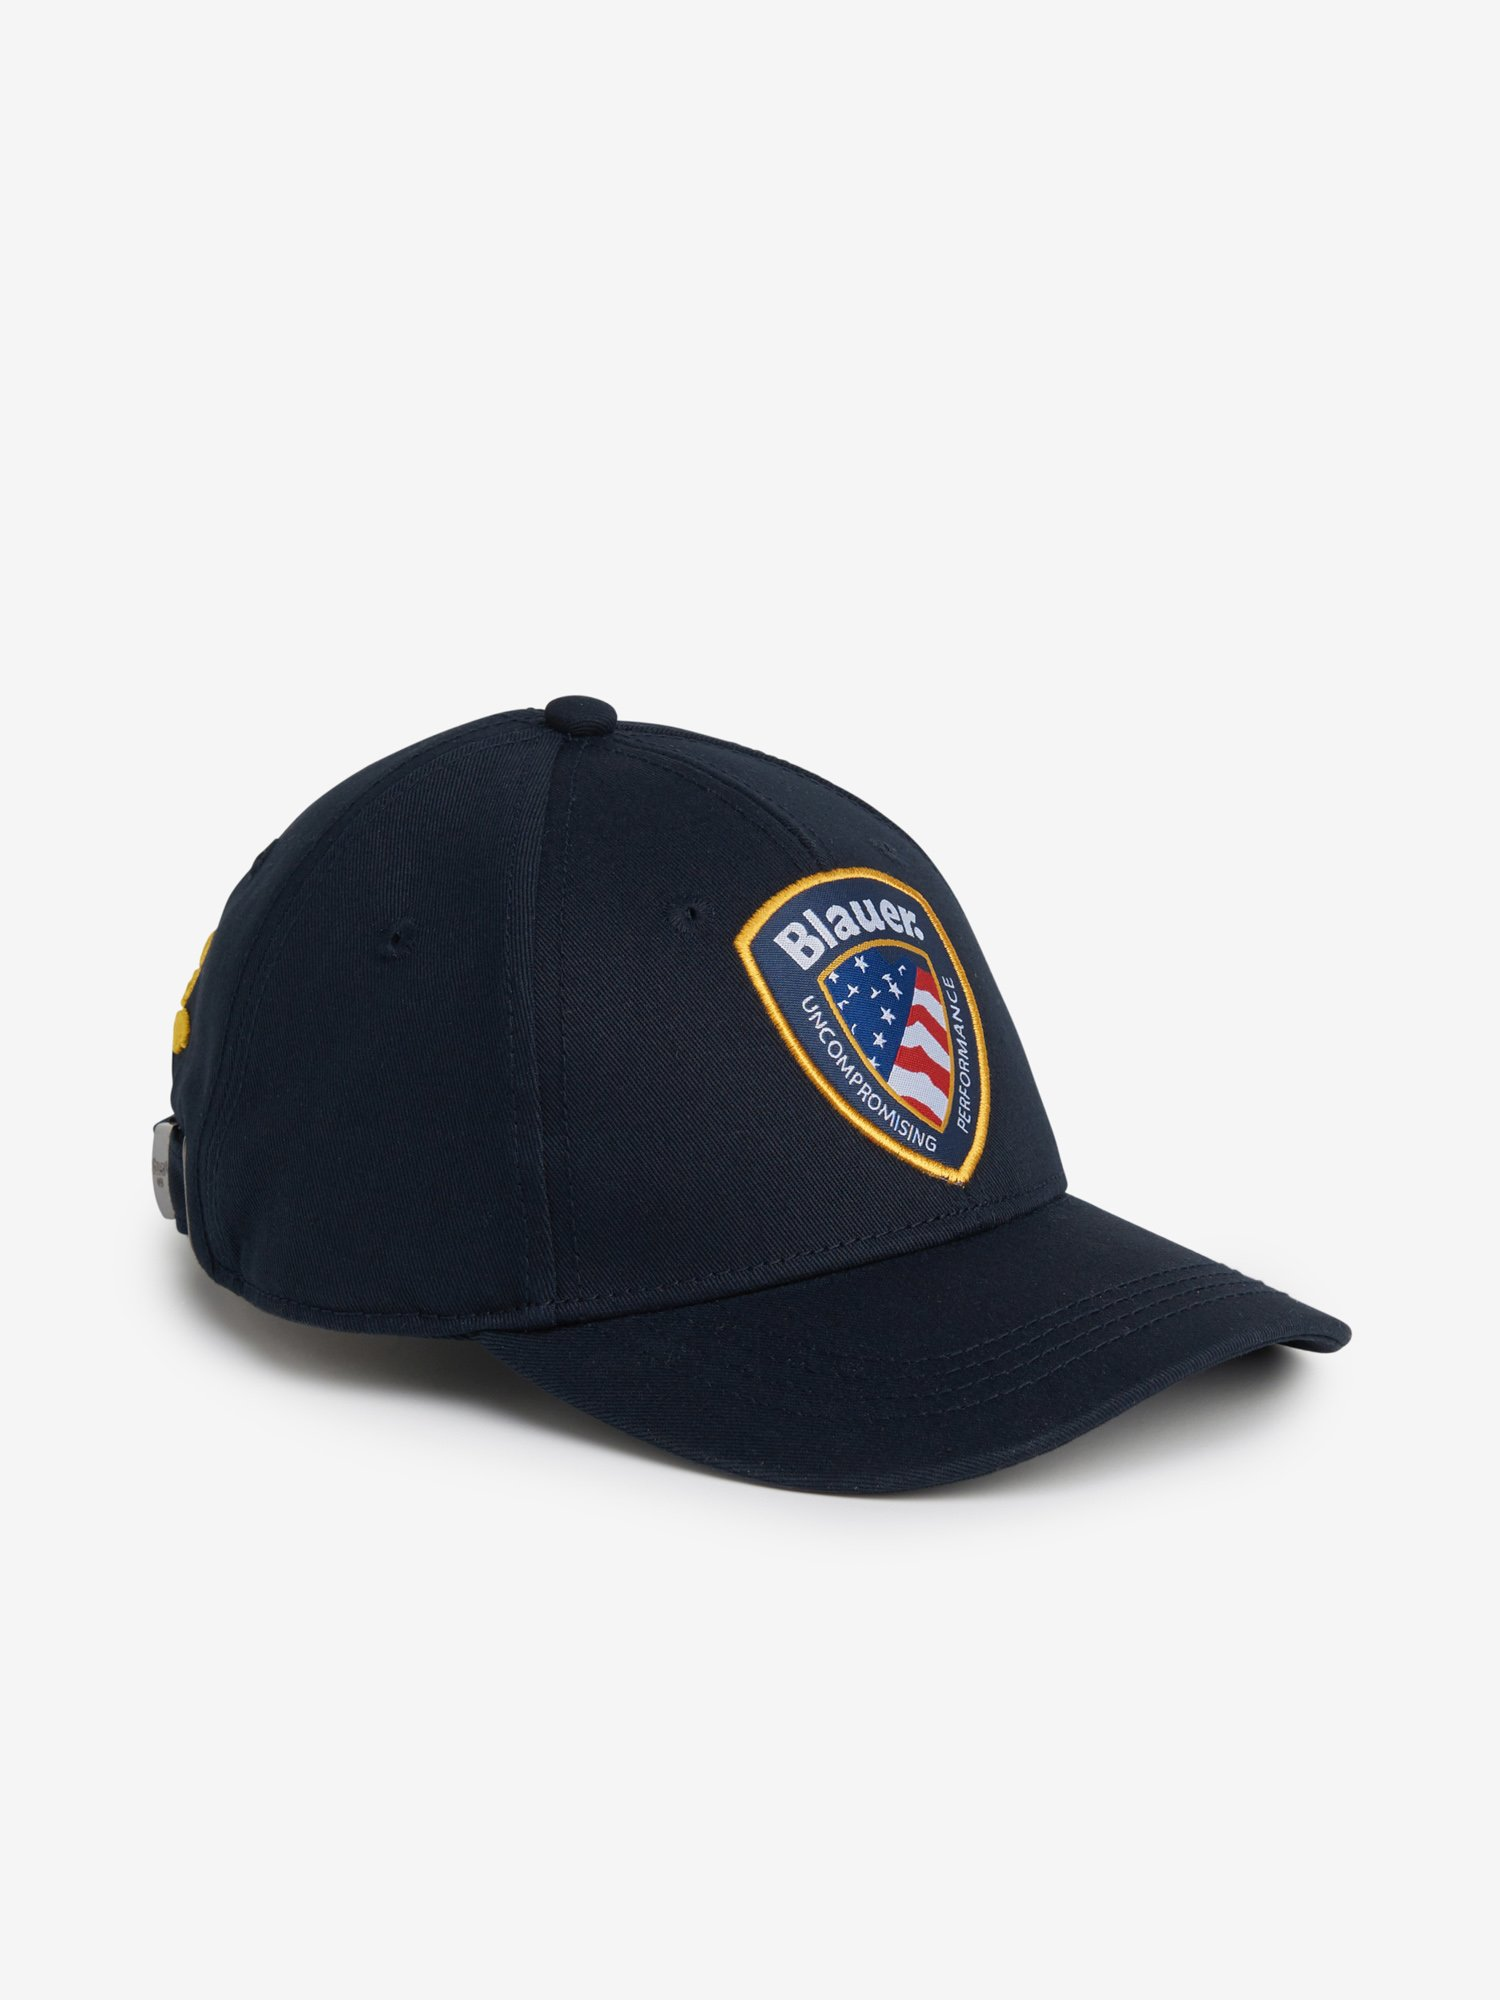 Blauer - GORRA BÉISBOL JUNIOR PATCH BLAUER - Cadet Blue - Blauer